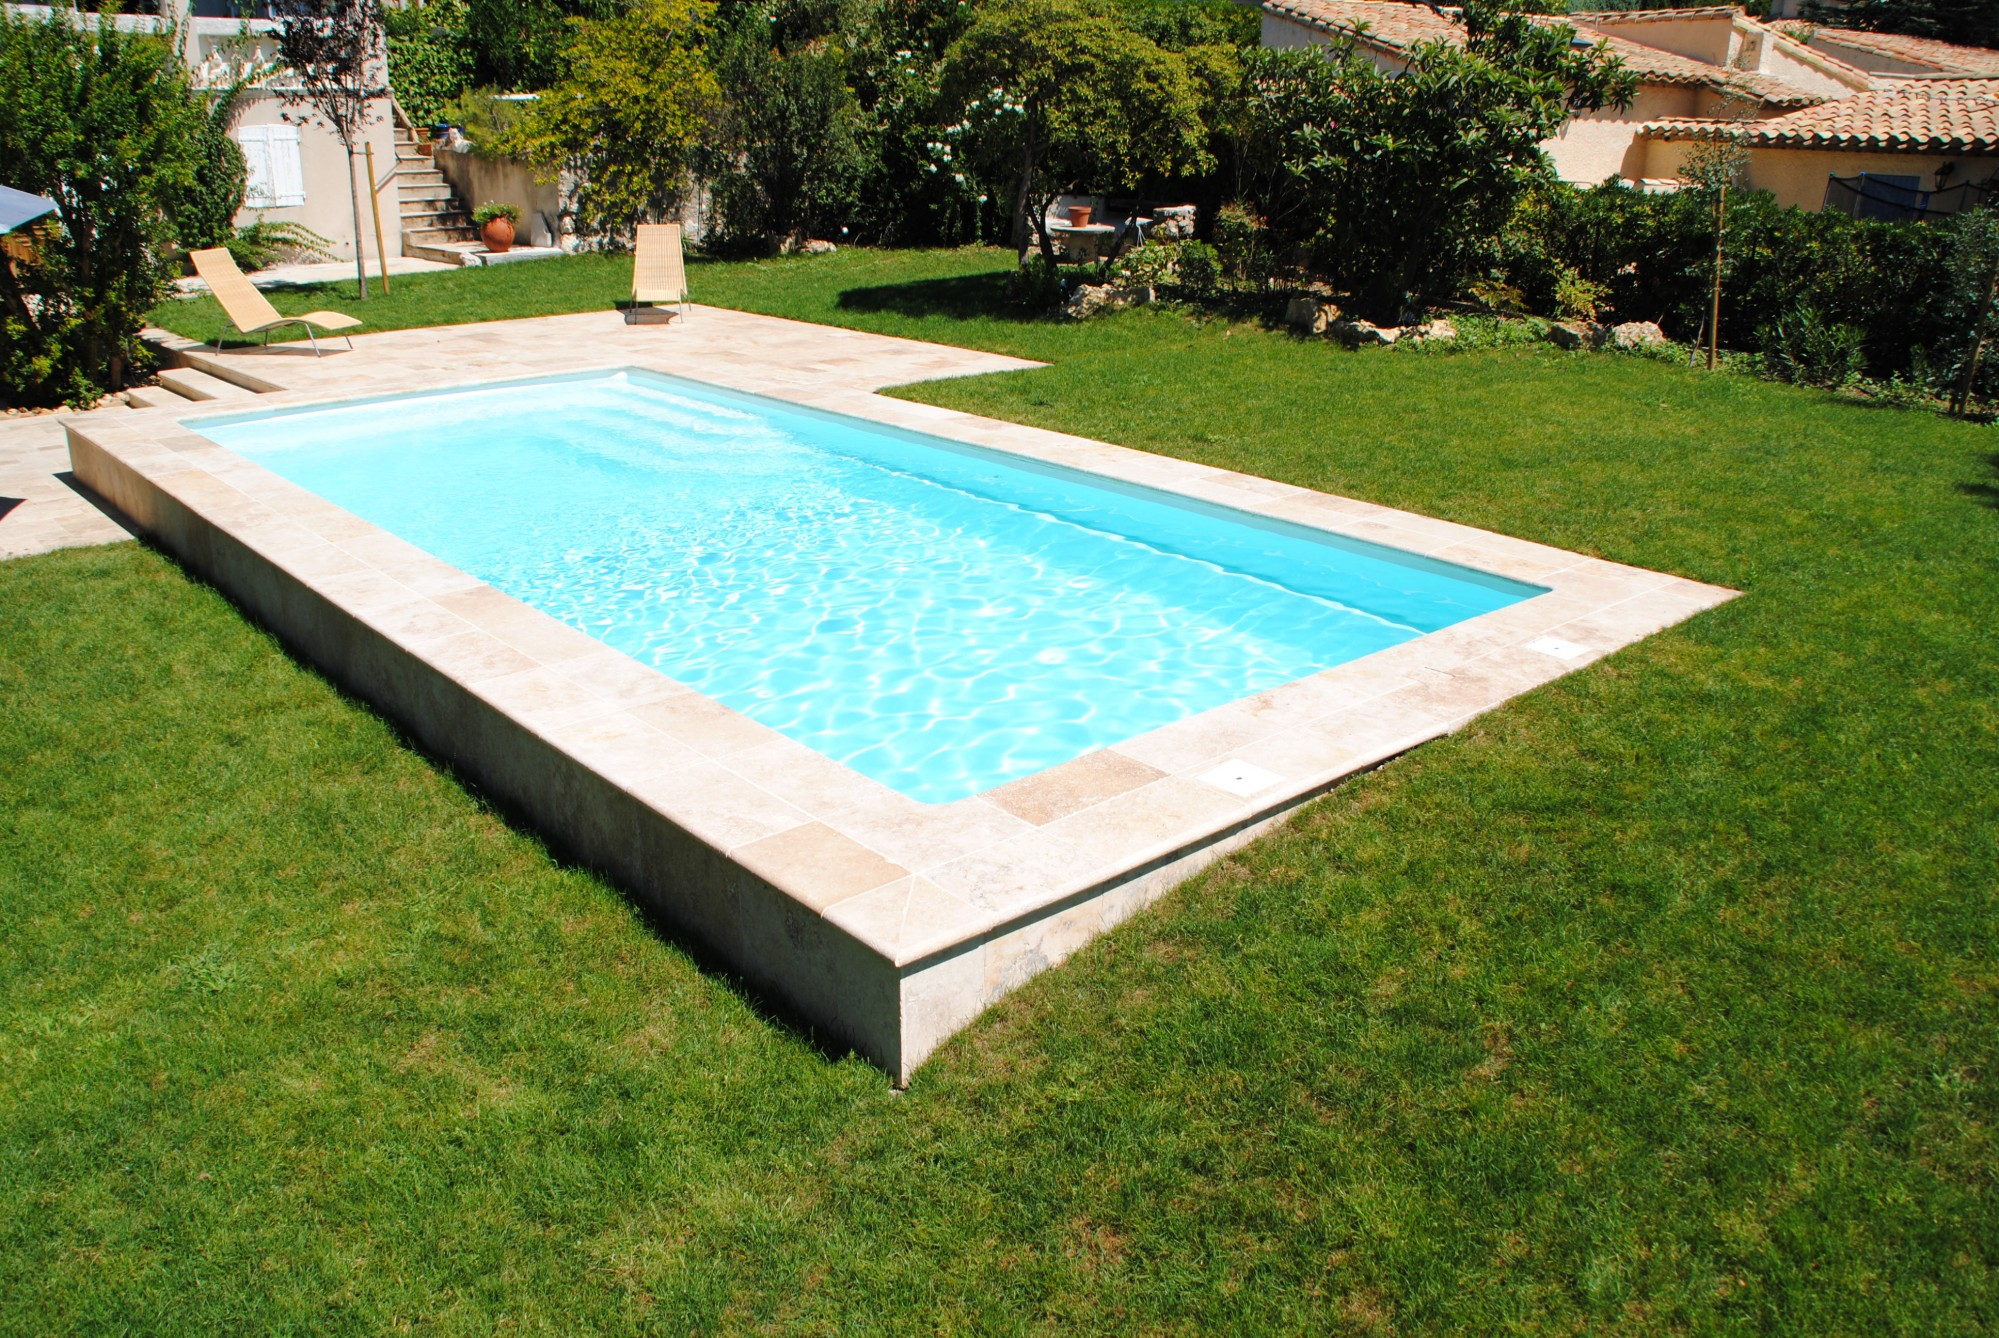 Piscines coque polyester pas chere piscine polyester for Piscine coque polyester